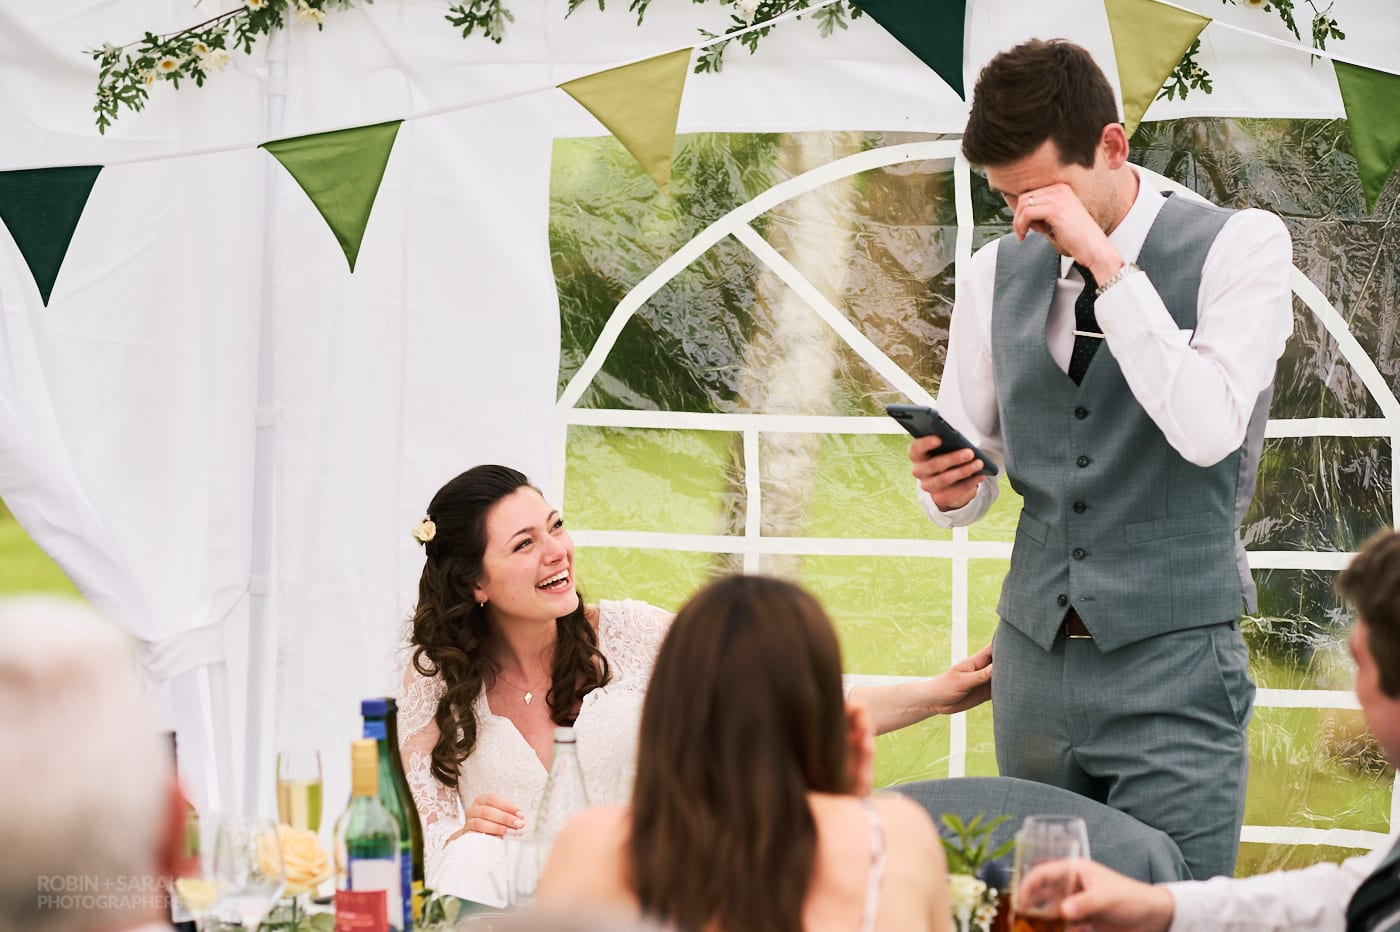 Groom emotional during speeches